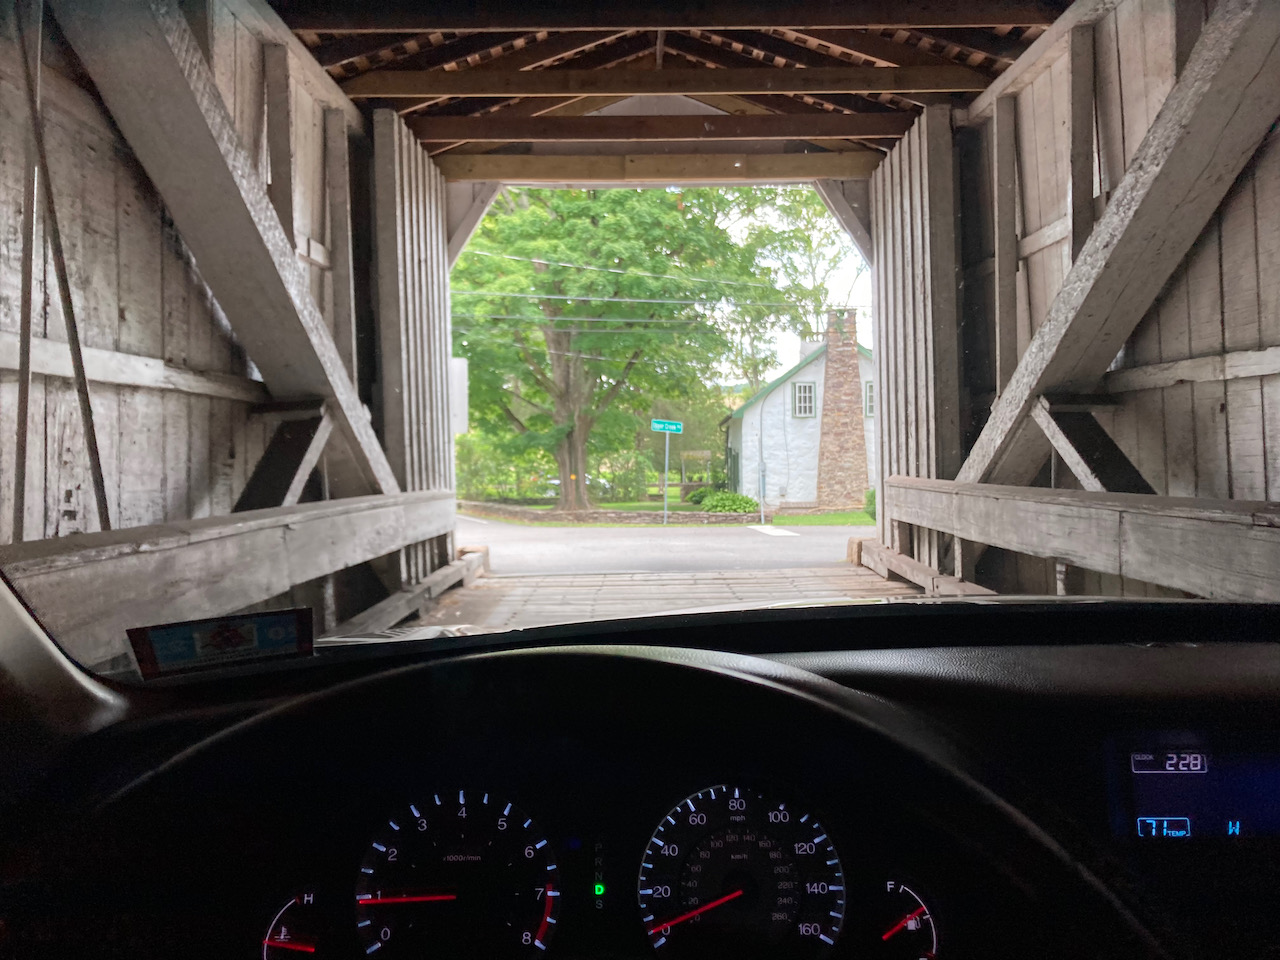 View from inside covered bridge, with dashboard of 2012 Honda Accord in foreground.